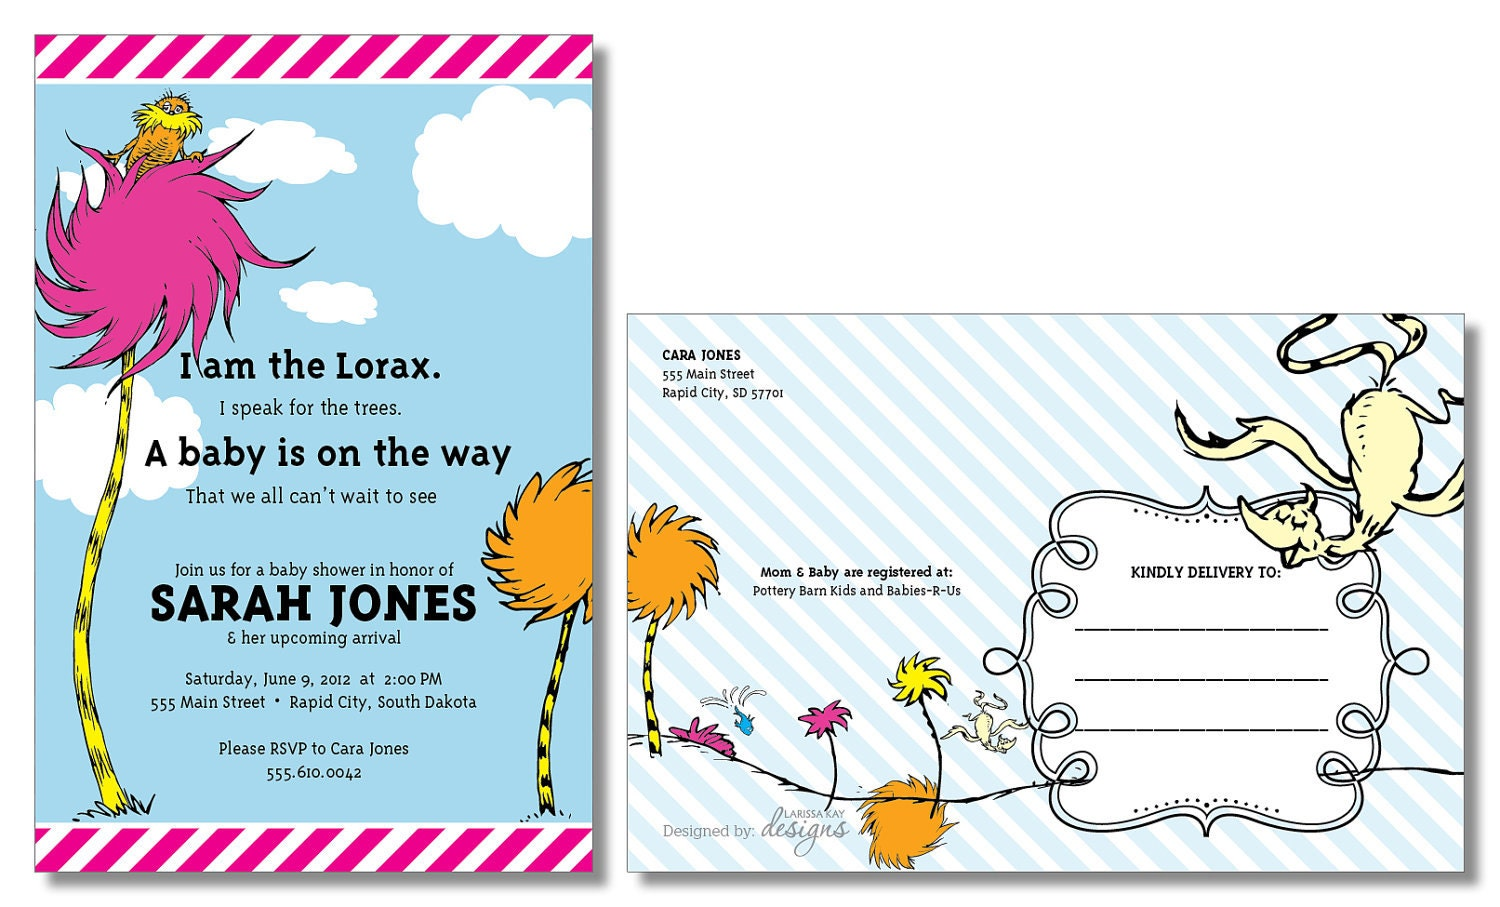 Lorax Baby Shower Invitations is awesome invitation example